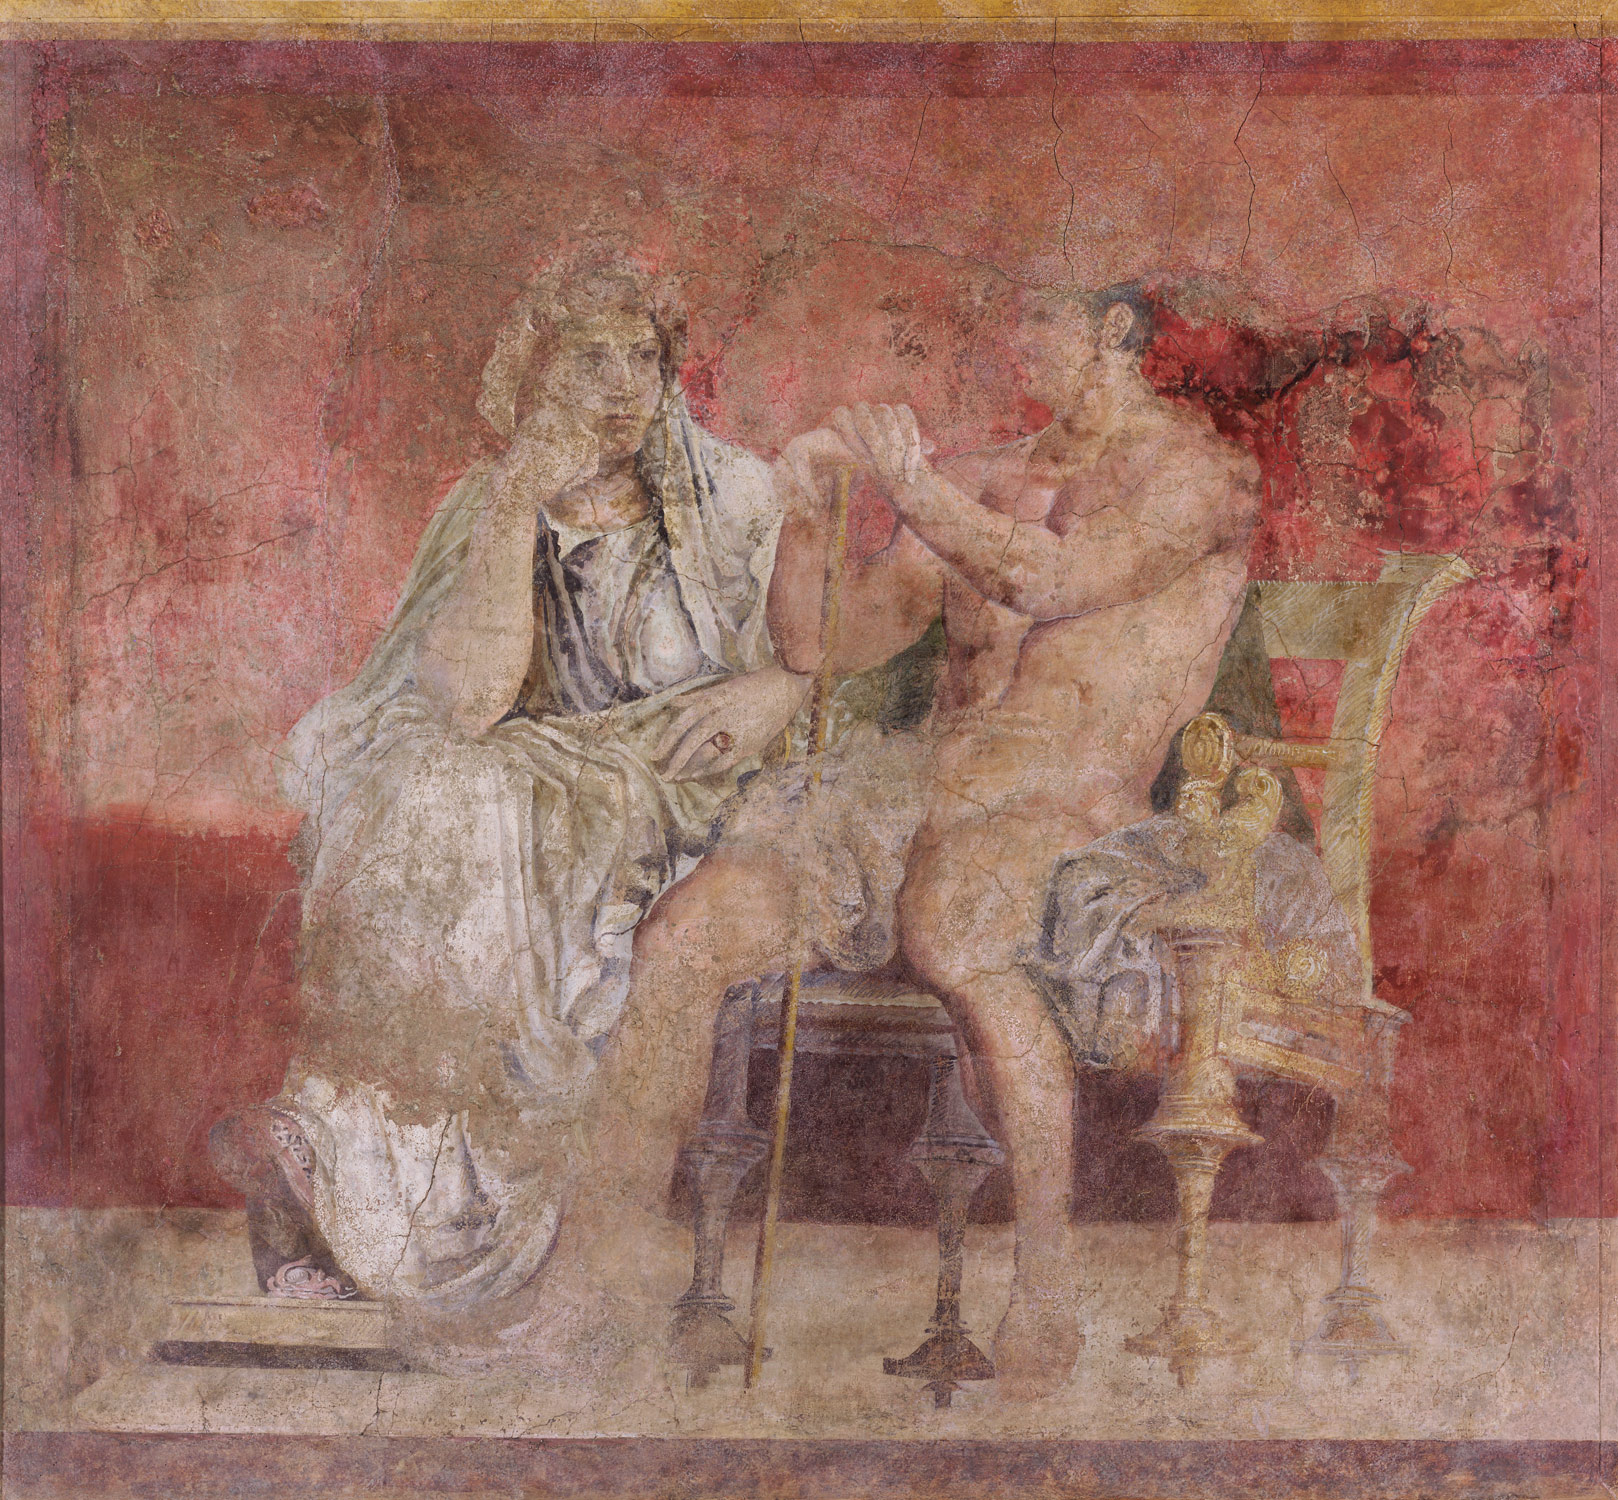 Stucco Pompeji Boscoreale: Frescoes From The Villa Of P. Fannius Synistor